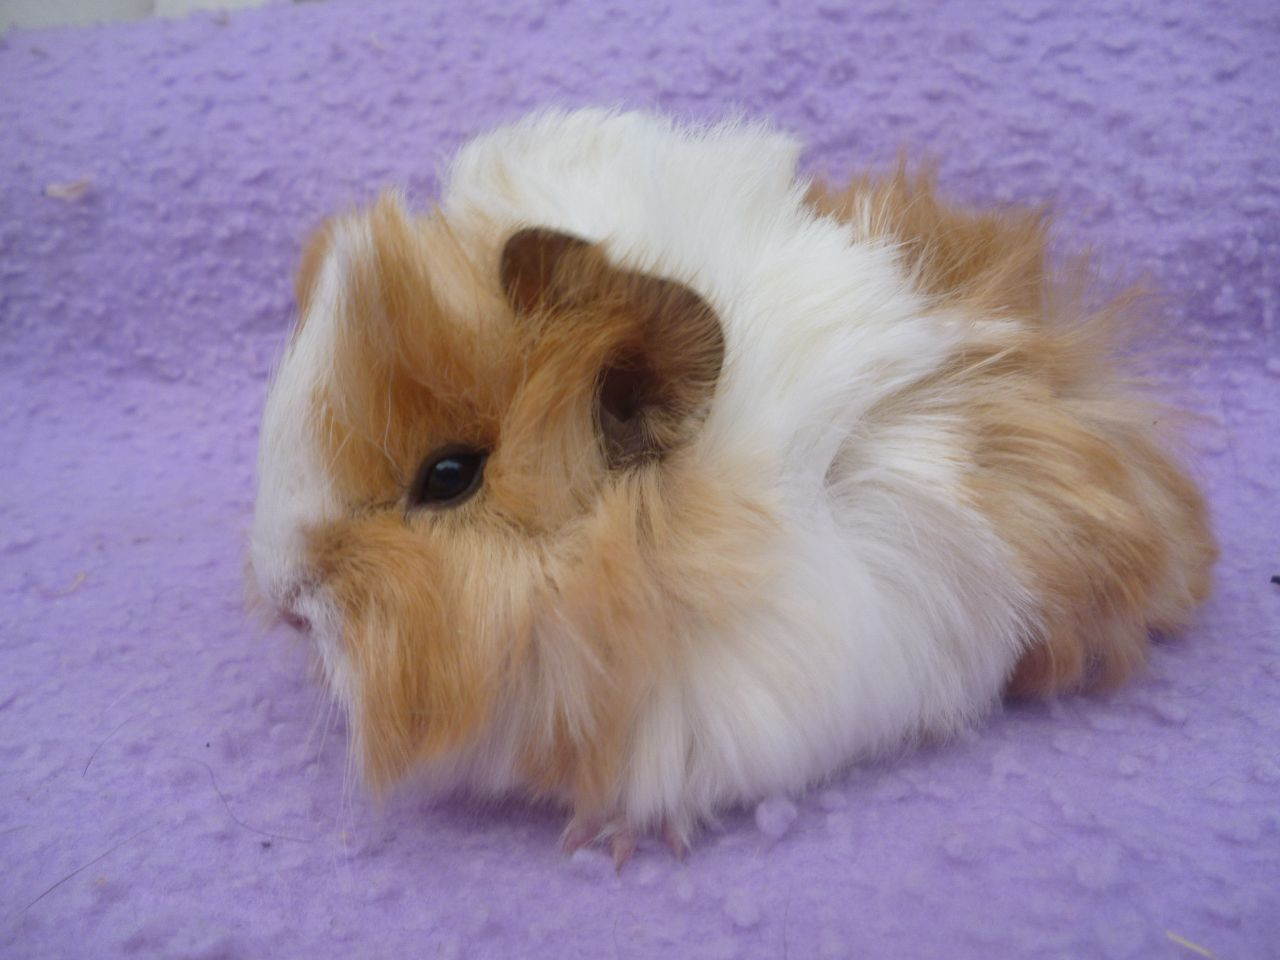 image Cute Guinea Pigs PC Android iPhone and iPad Wallpapers 1280x960